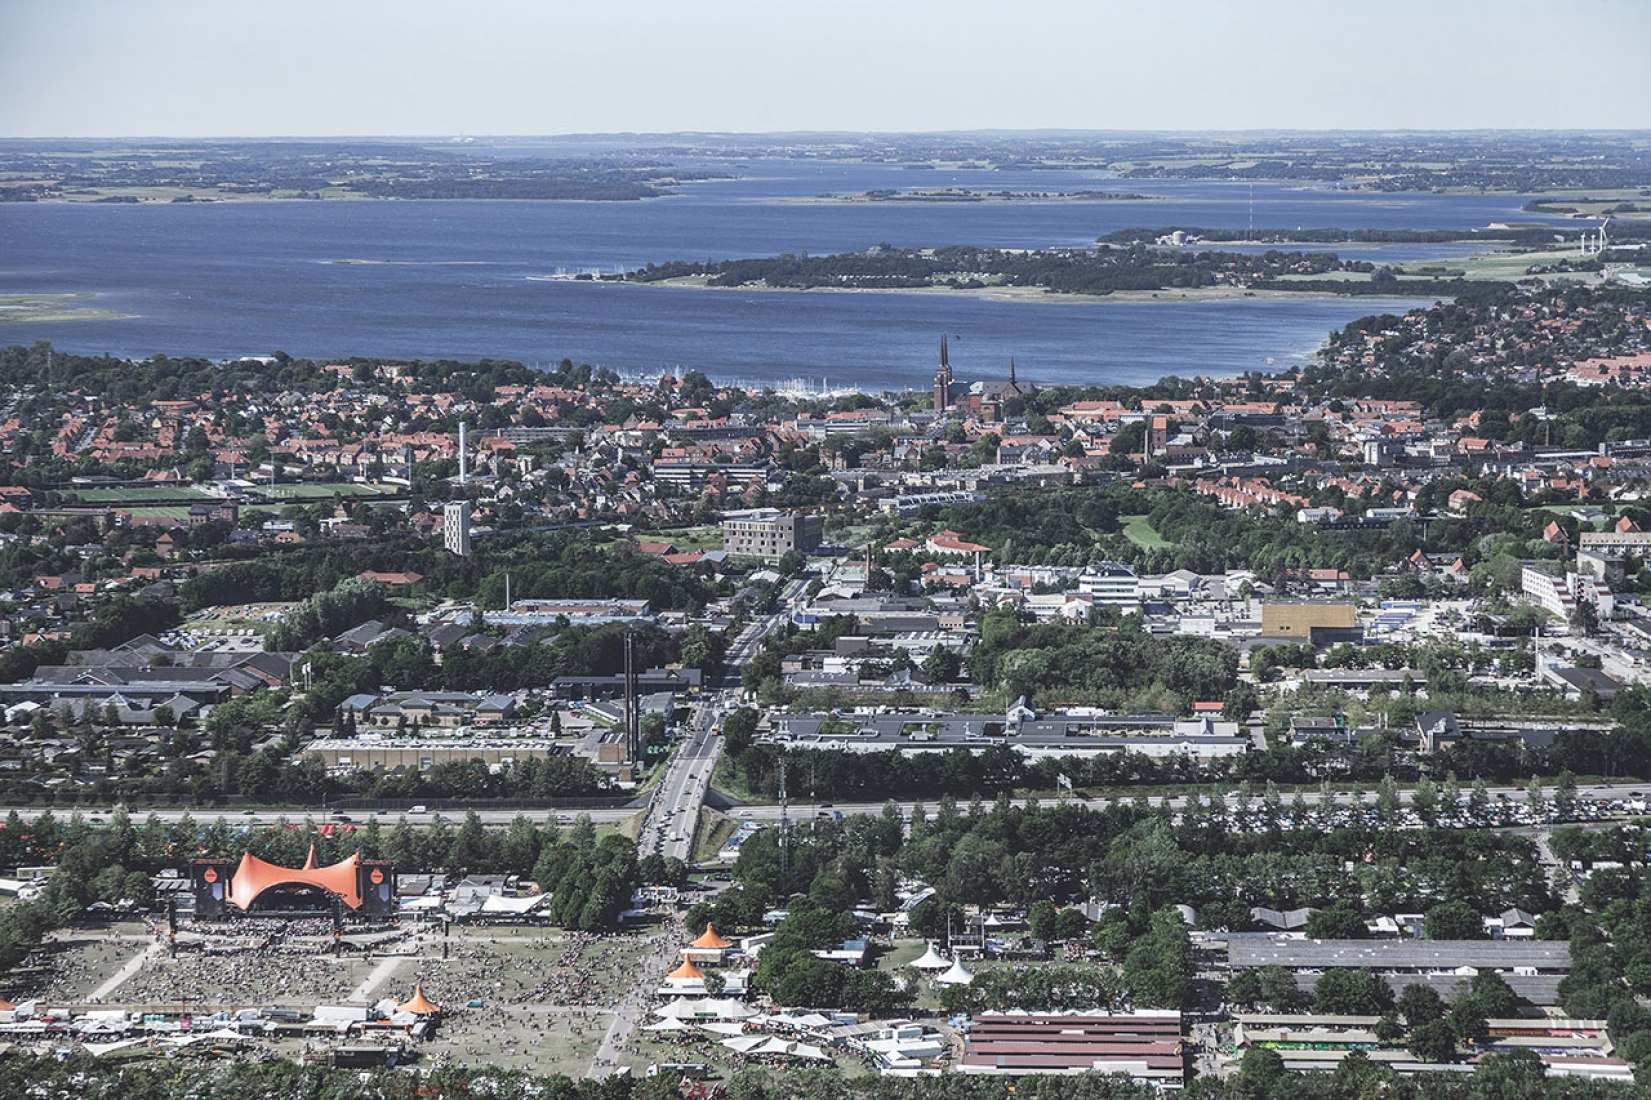 Aerial view. New Rock Music Museum by COBE and MVRDV. Photography © Rasmus-Hjortshøj, COAST-Studio, COBE and MVRDV.